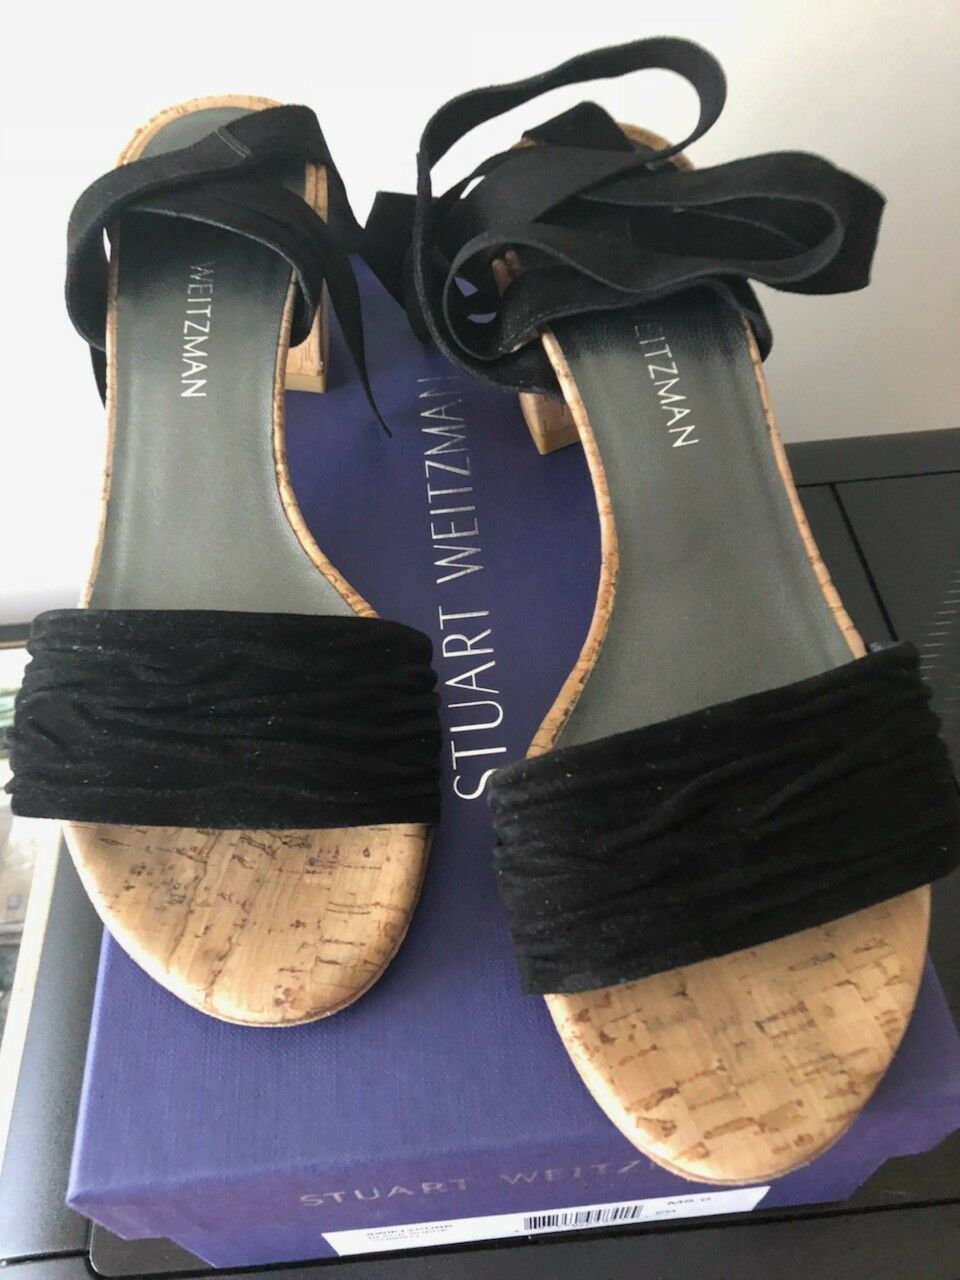 Stuart Weitzman SwiftyCork Suede Tie Up Ankle Wrap Sandals shoes, Size 8M